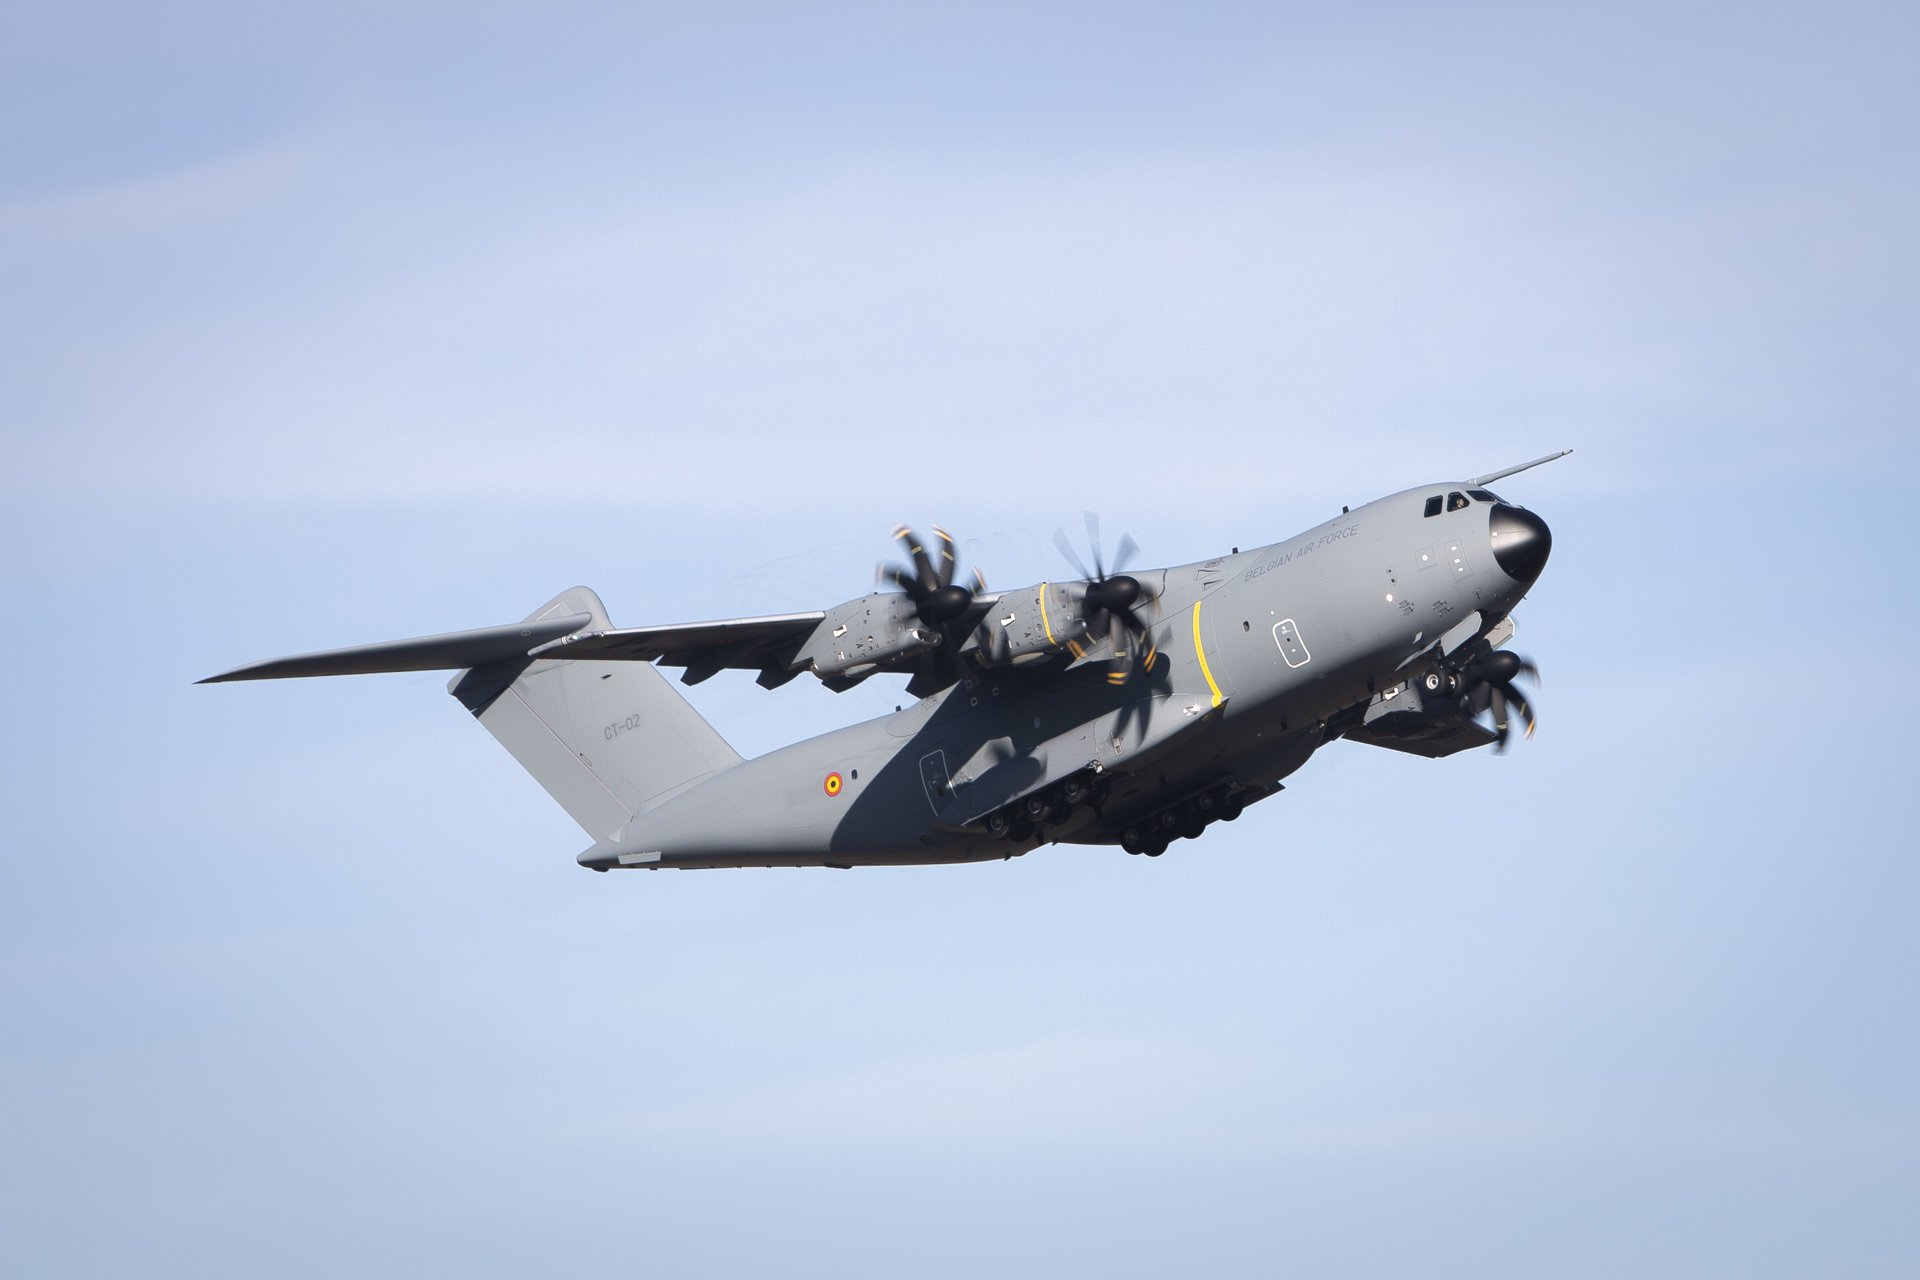 The initial Airbus A400M military transport aircraft for Belgium has been delivered. This aircraft – the first of seven for the Belgium Air Force – was handed over at the A400M Final Assembly Line in Seville, Spain, and subsequently performed its ferry flight to the 15th Wing Air Transport at Melsbroek, where the aircraft will be based